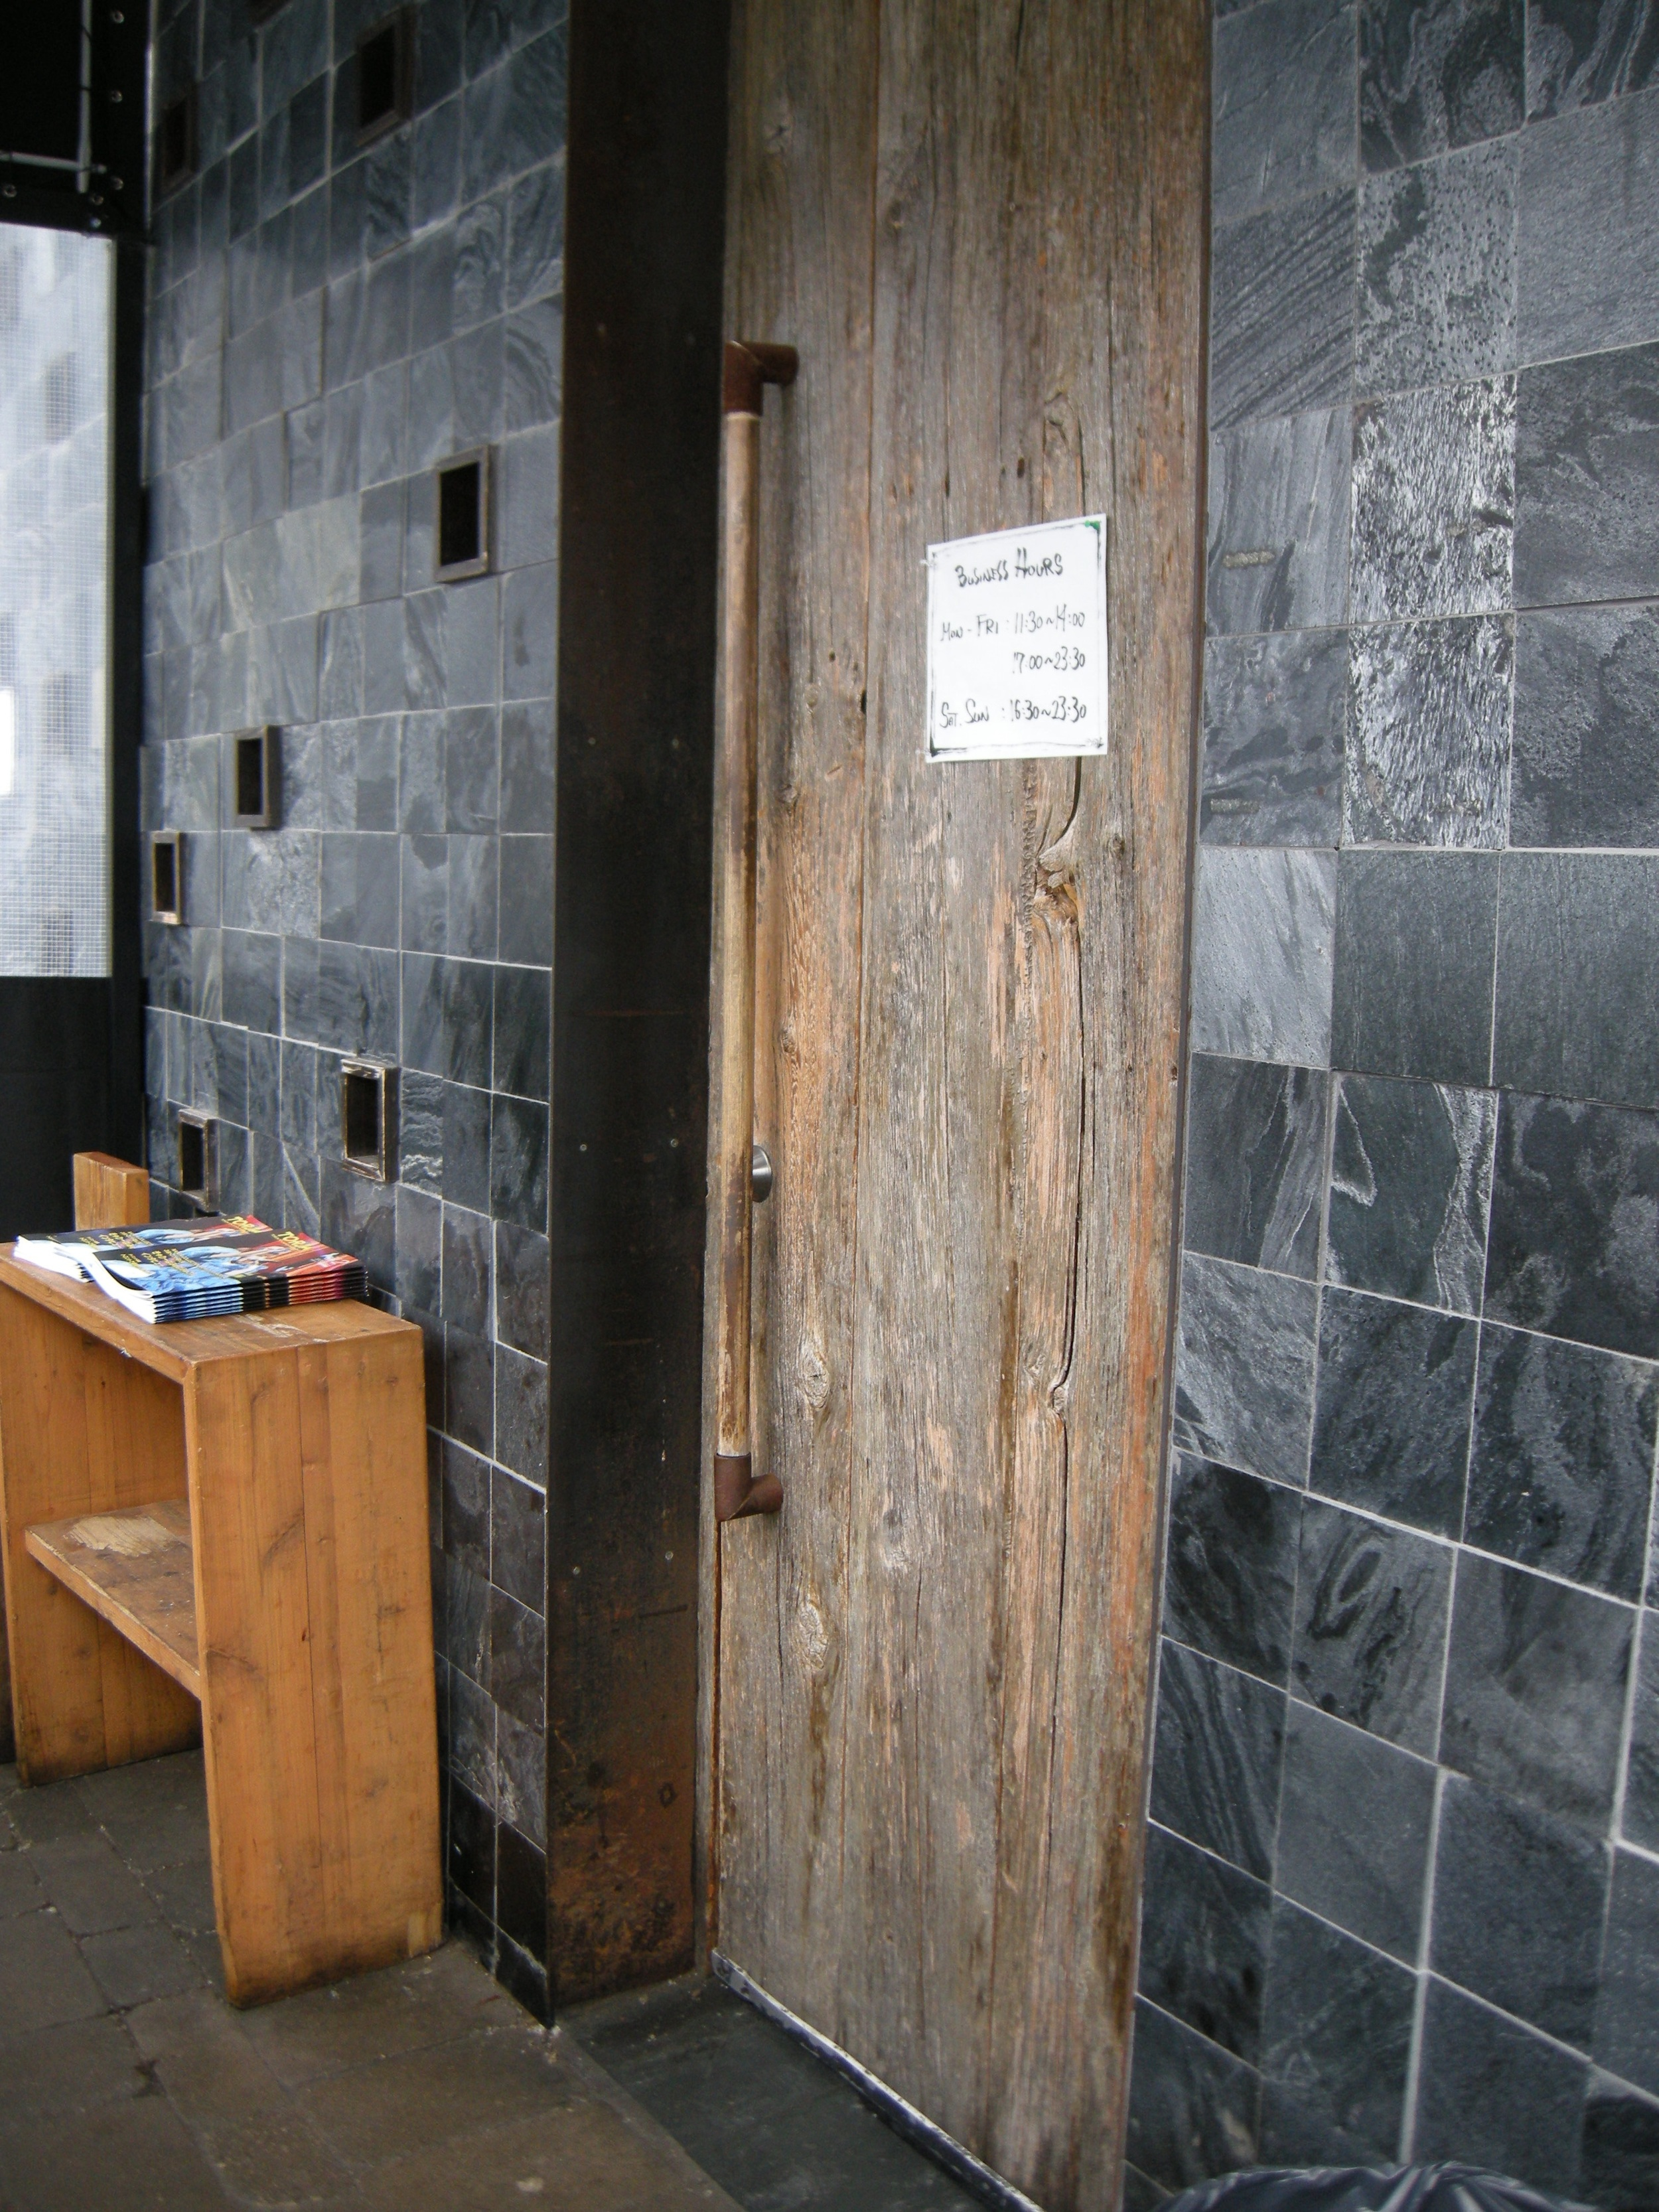 Picture of accessible entrance to Guu.